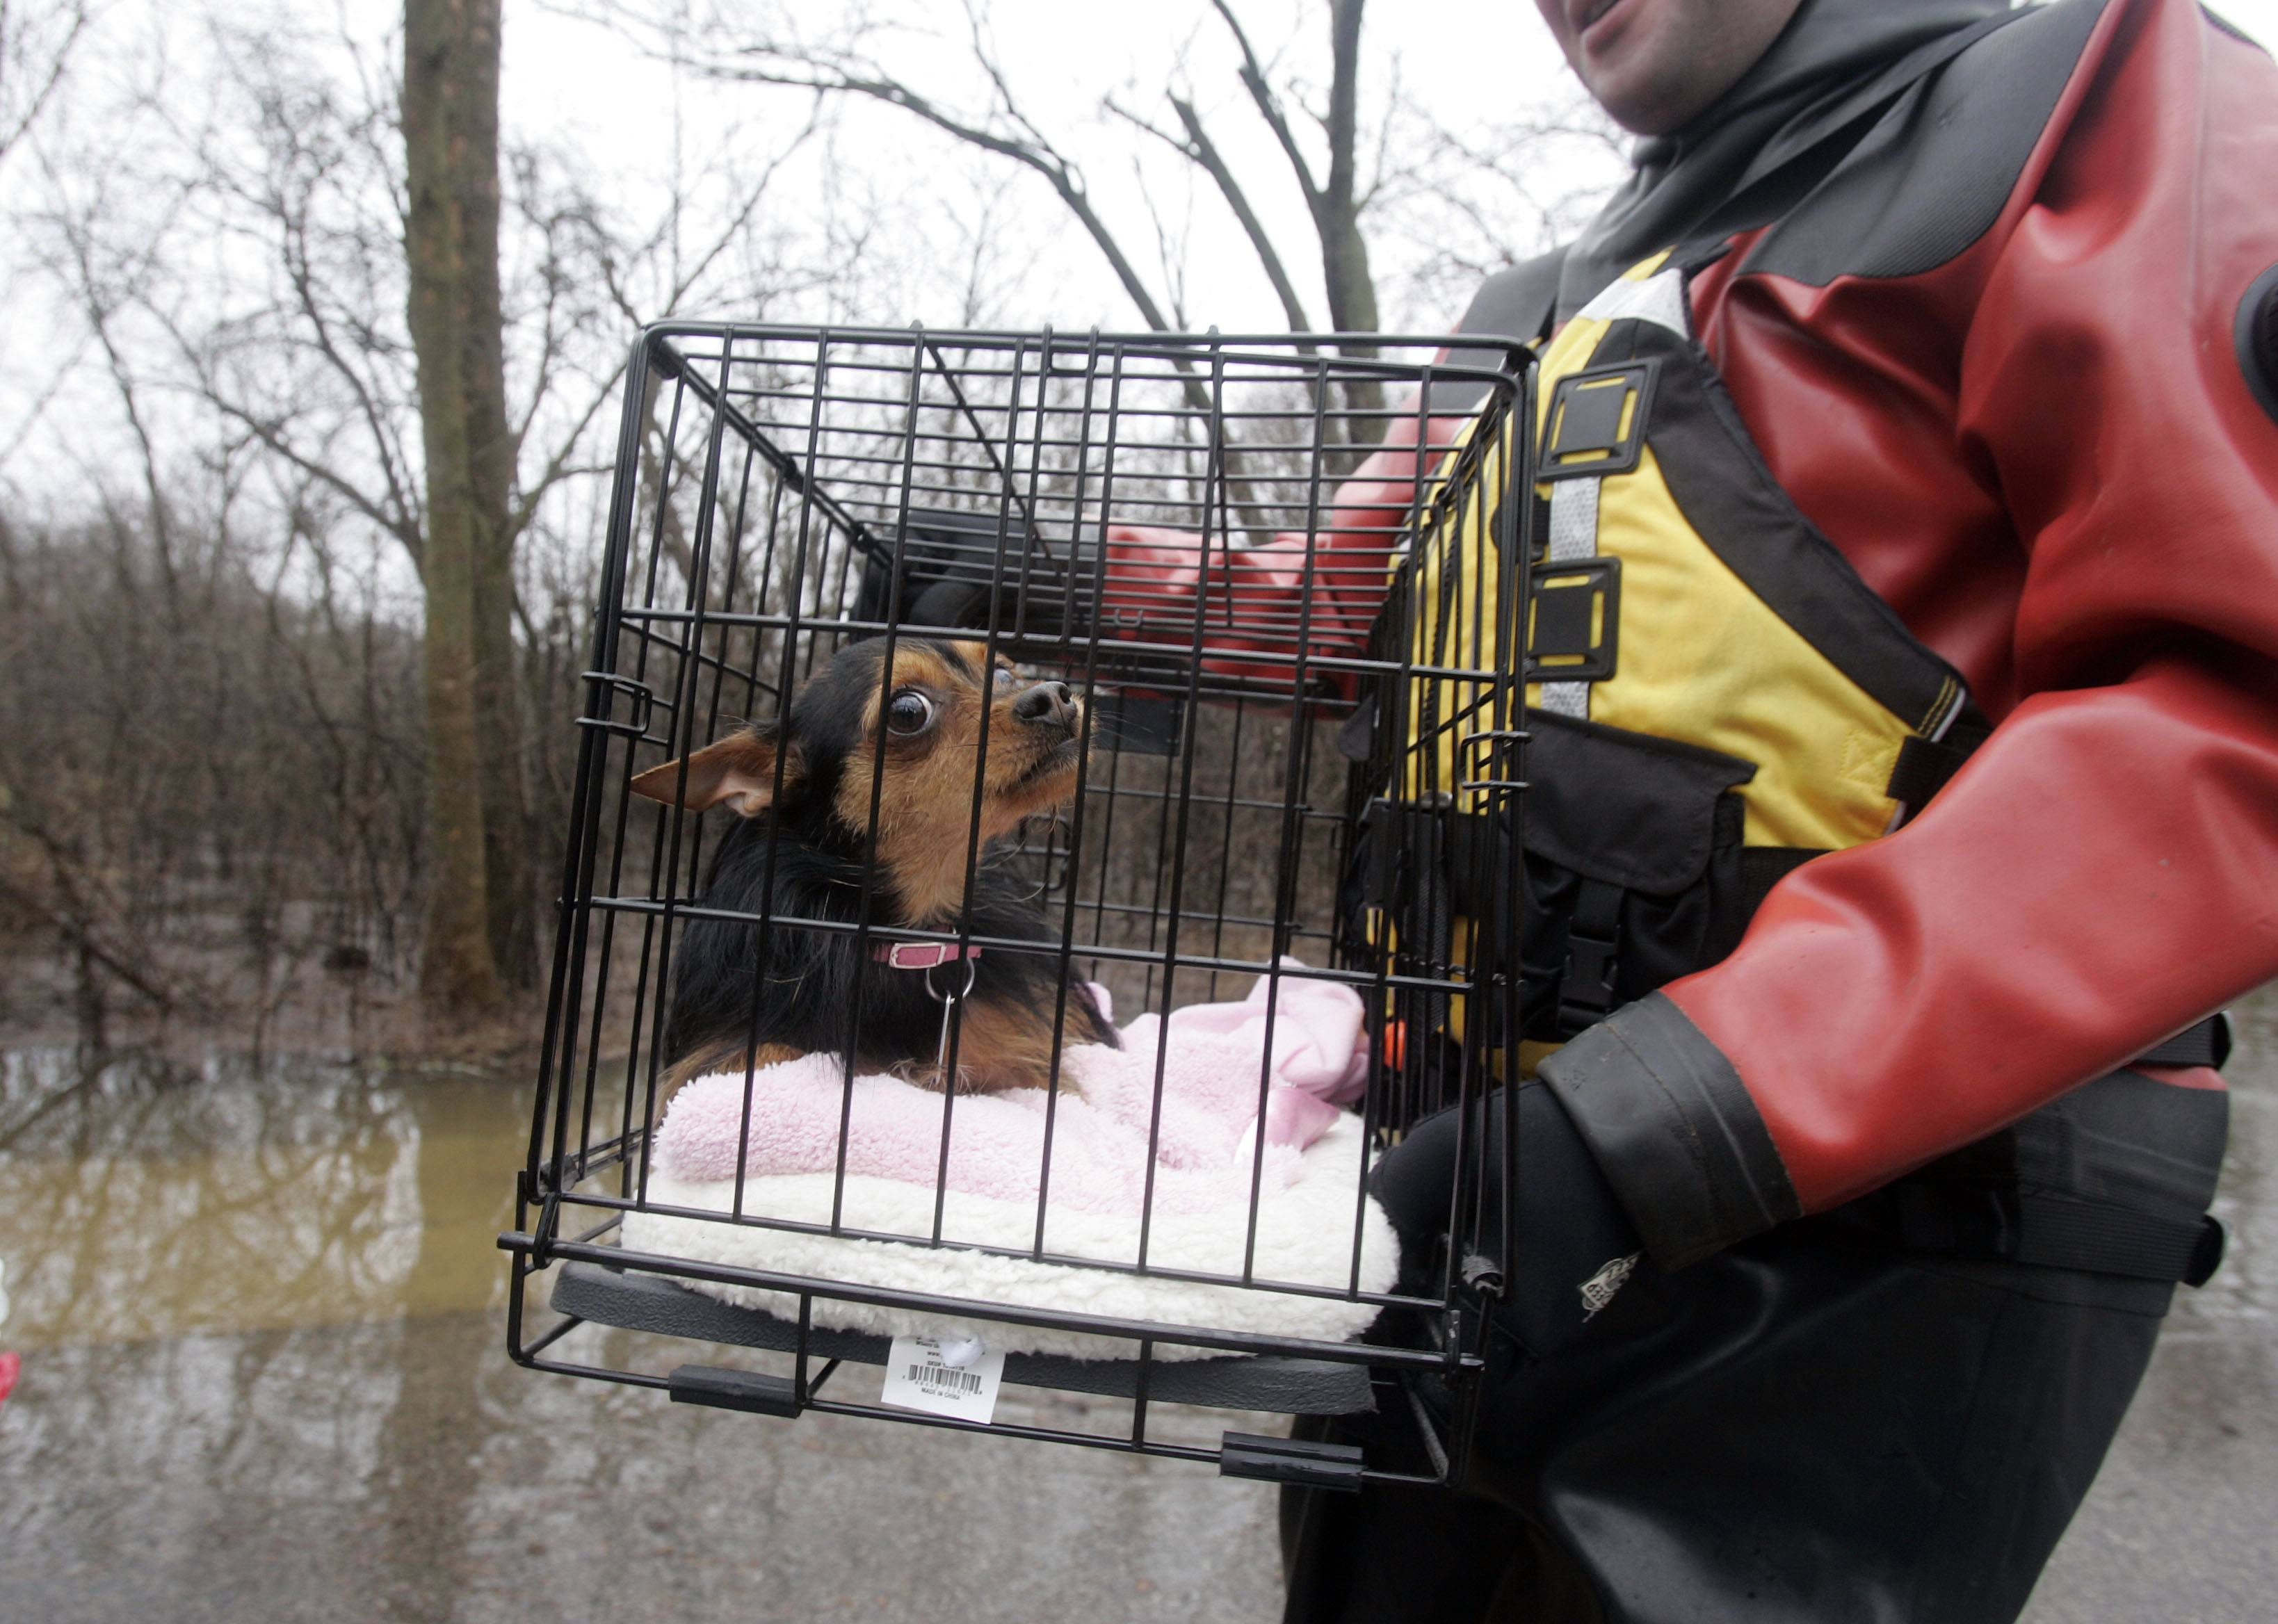 East Dundee firefighter Nick Beauchaine carries a scared Roxi after helping her owner from her home on Fox River Drive along the Fox River in East Dundee.